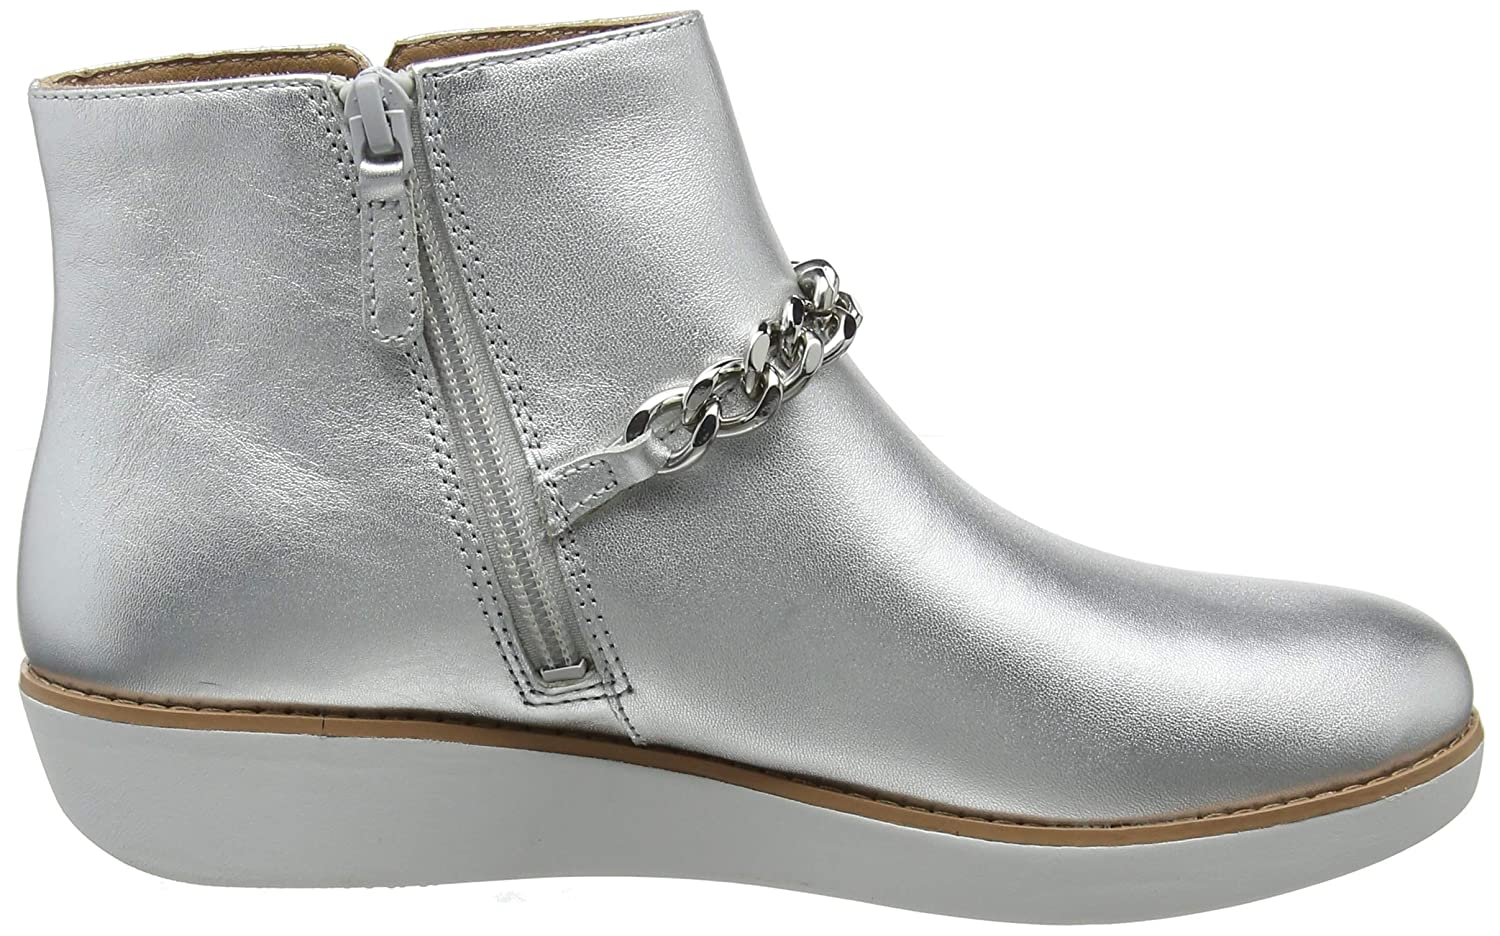 ee9da4839733 Fitflop Women s s Pia Chain Metallic Ankle Boots  Amazon.co.uk  Shoes   Bags